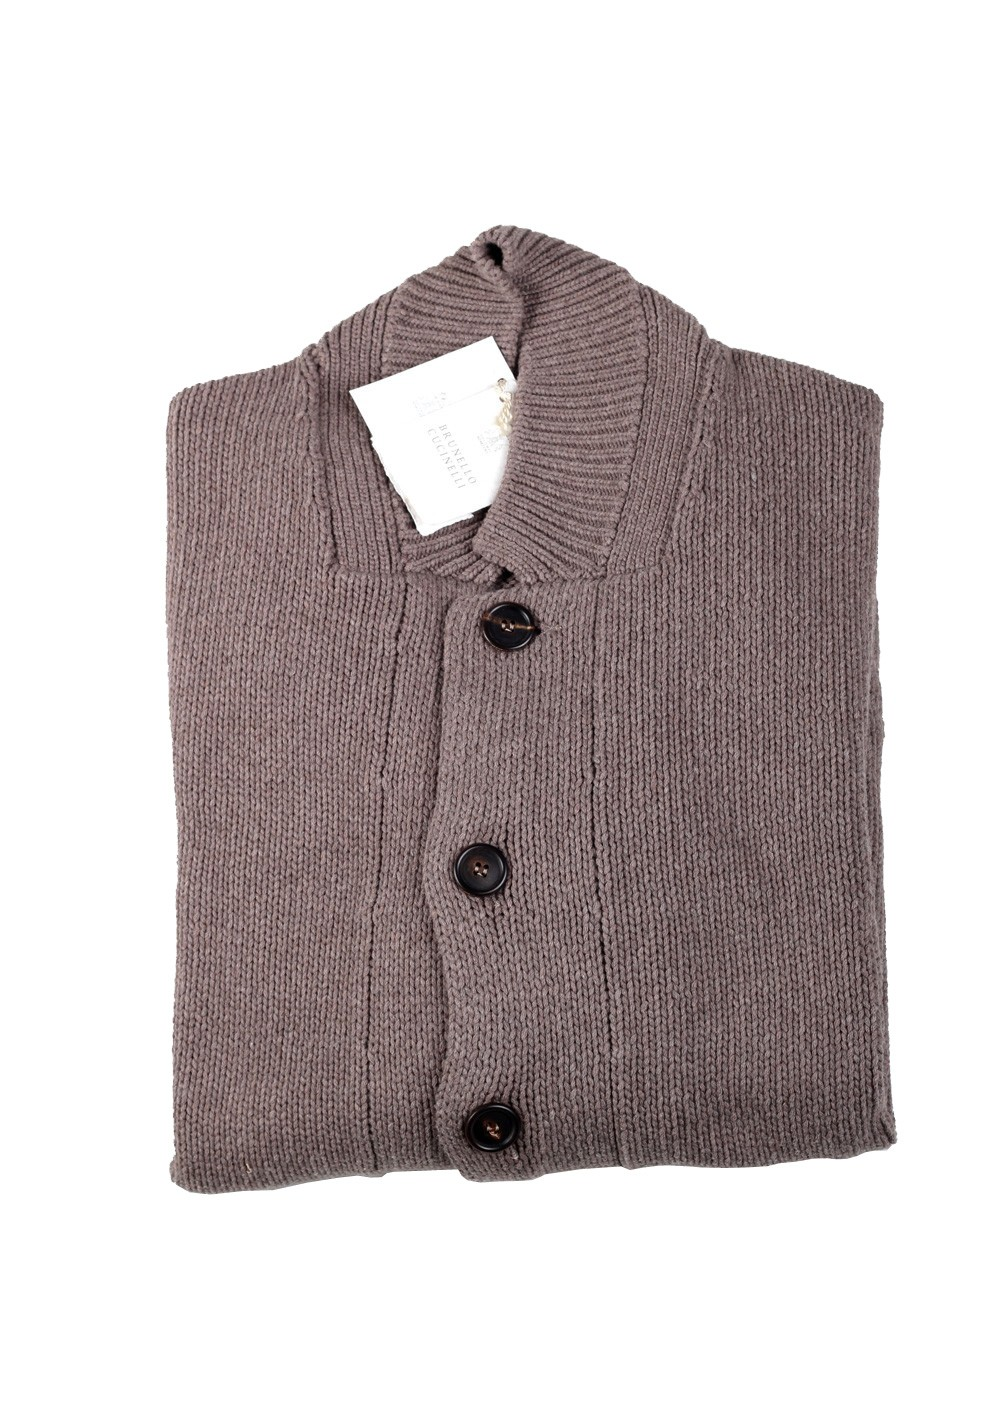 Cucinelli Cardigan Size 58 / 48R U.S. Brown Cotton | Costume Limité